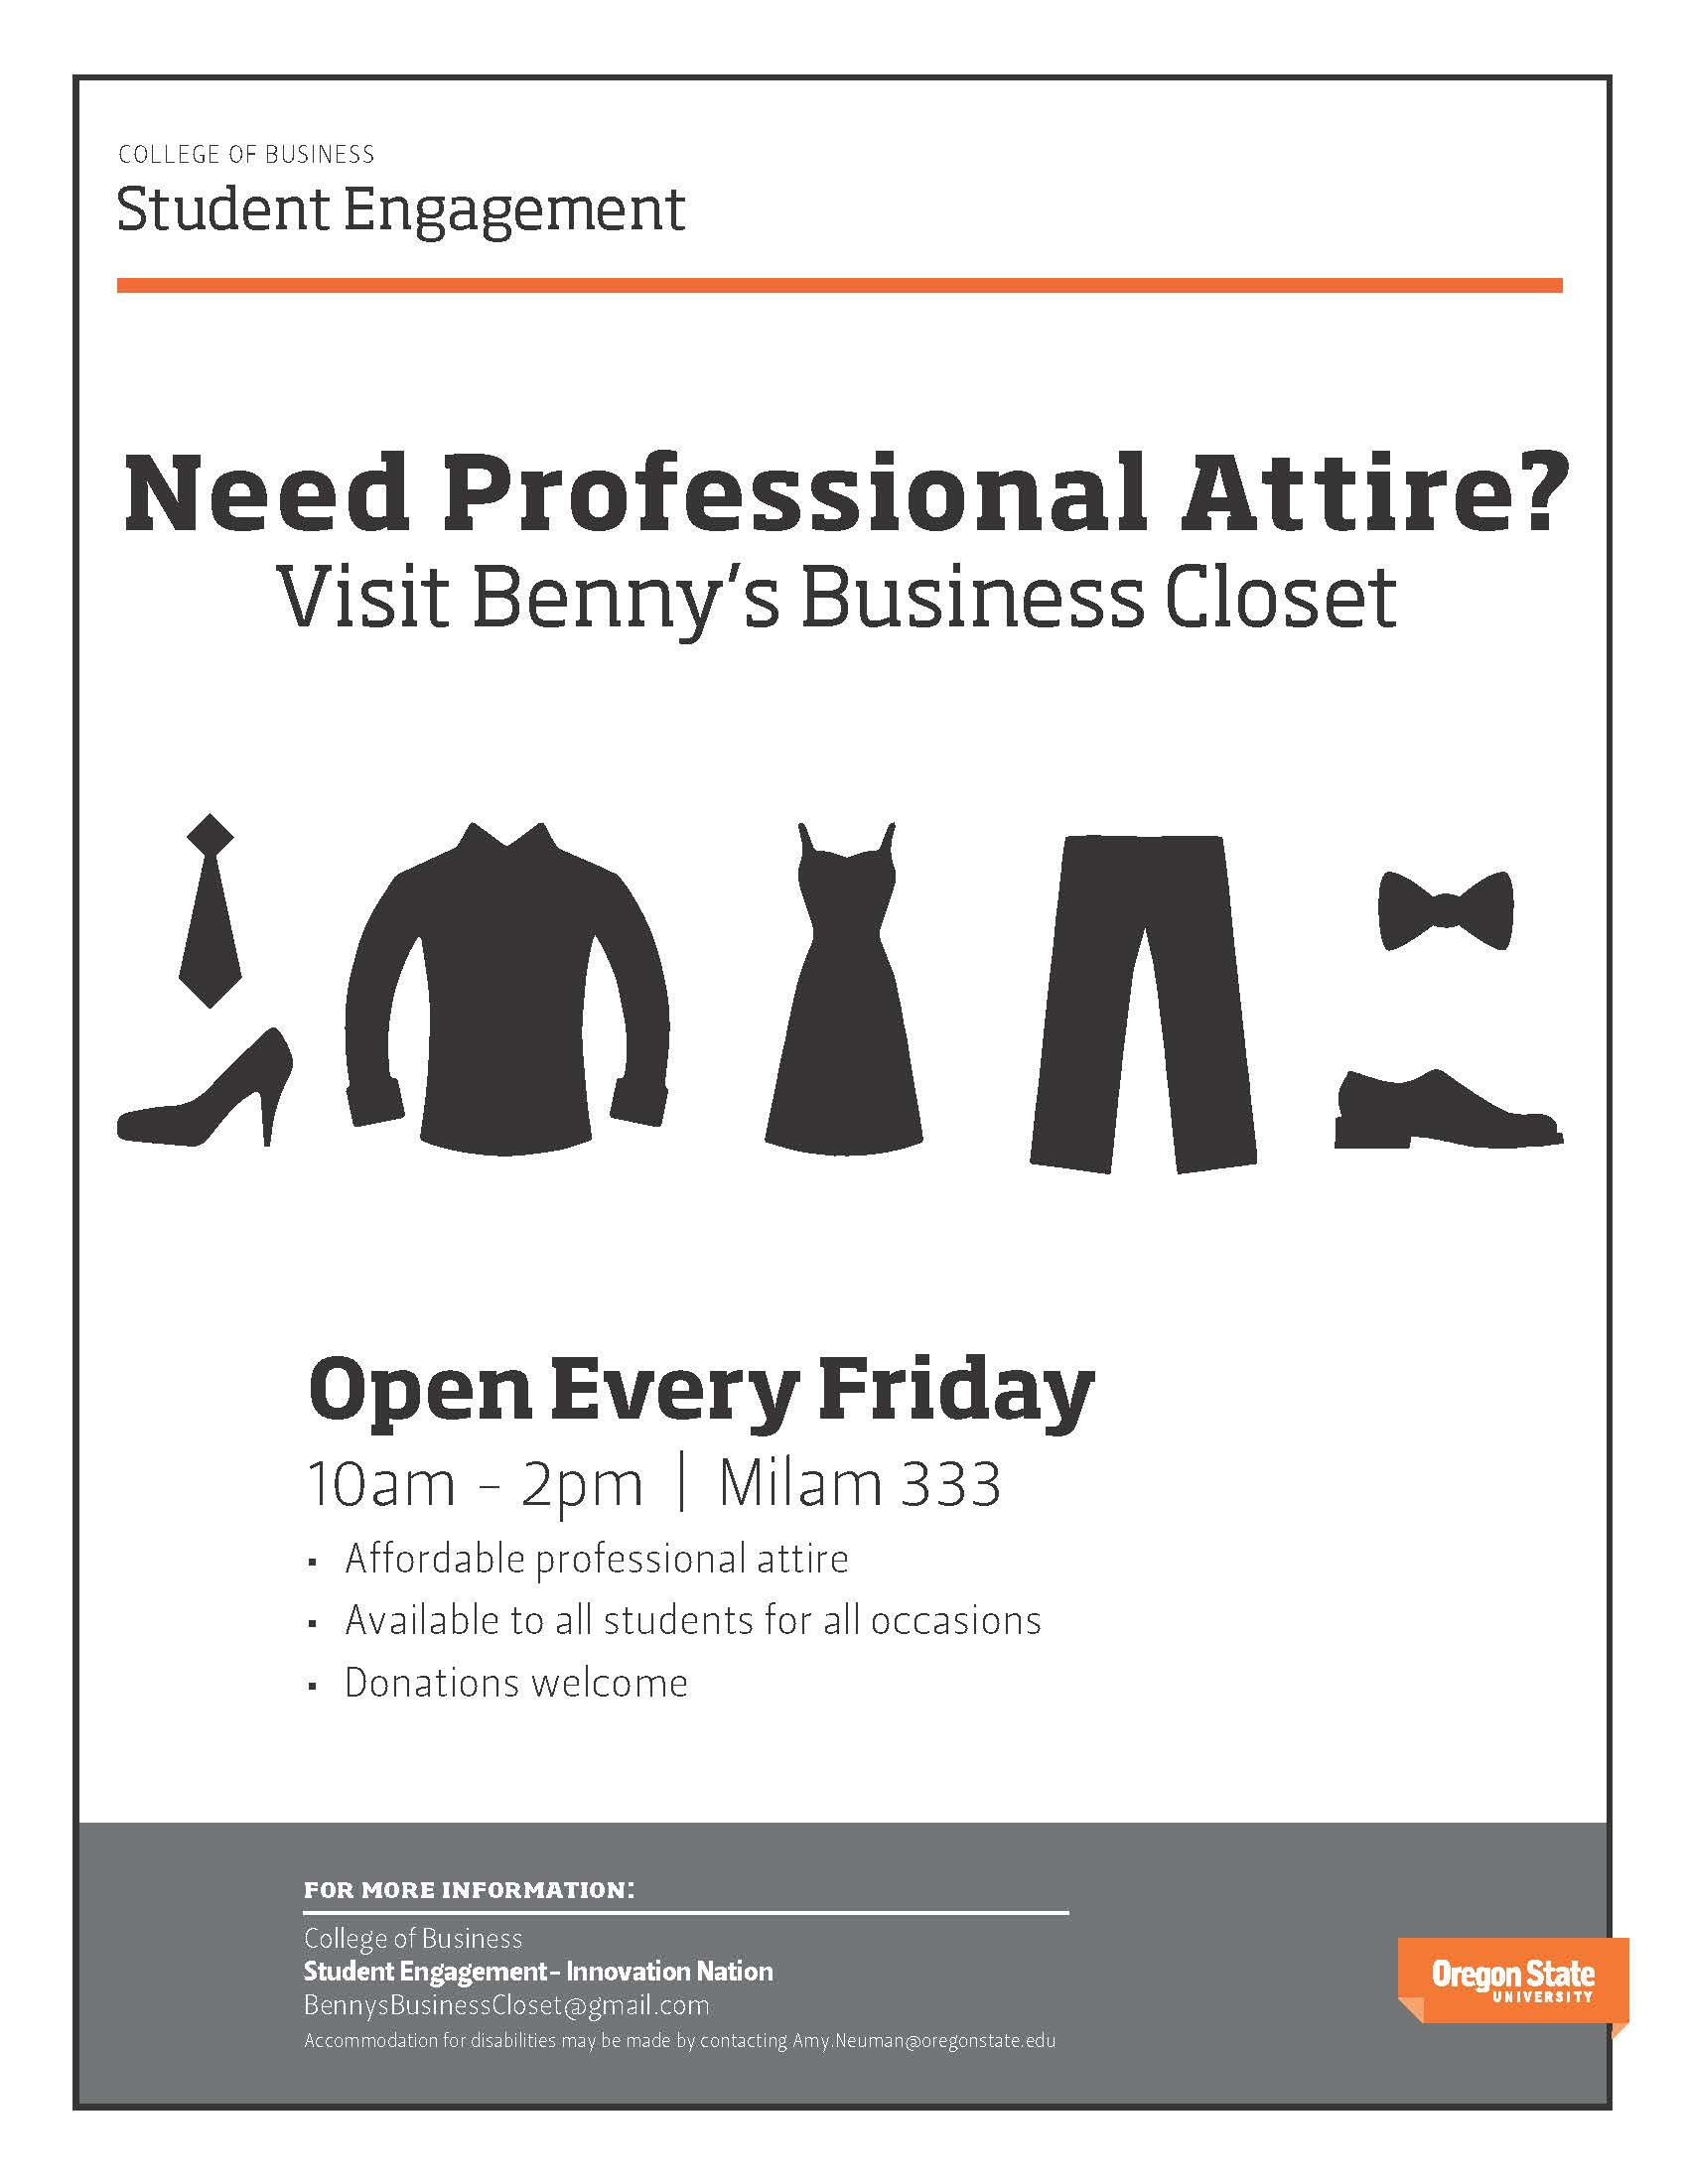 get affordable professional attire! Benny's business closet if open friday's from 10 A.M to 2 P.M